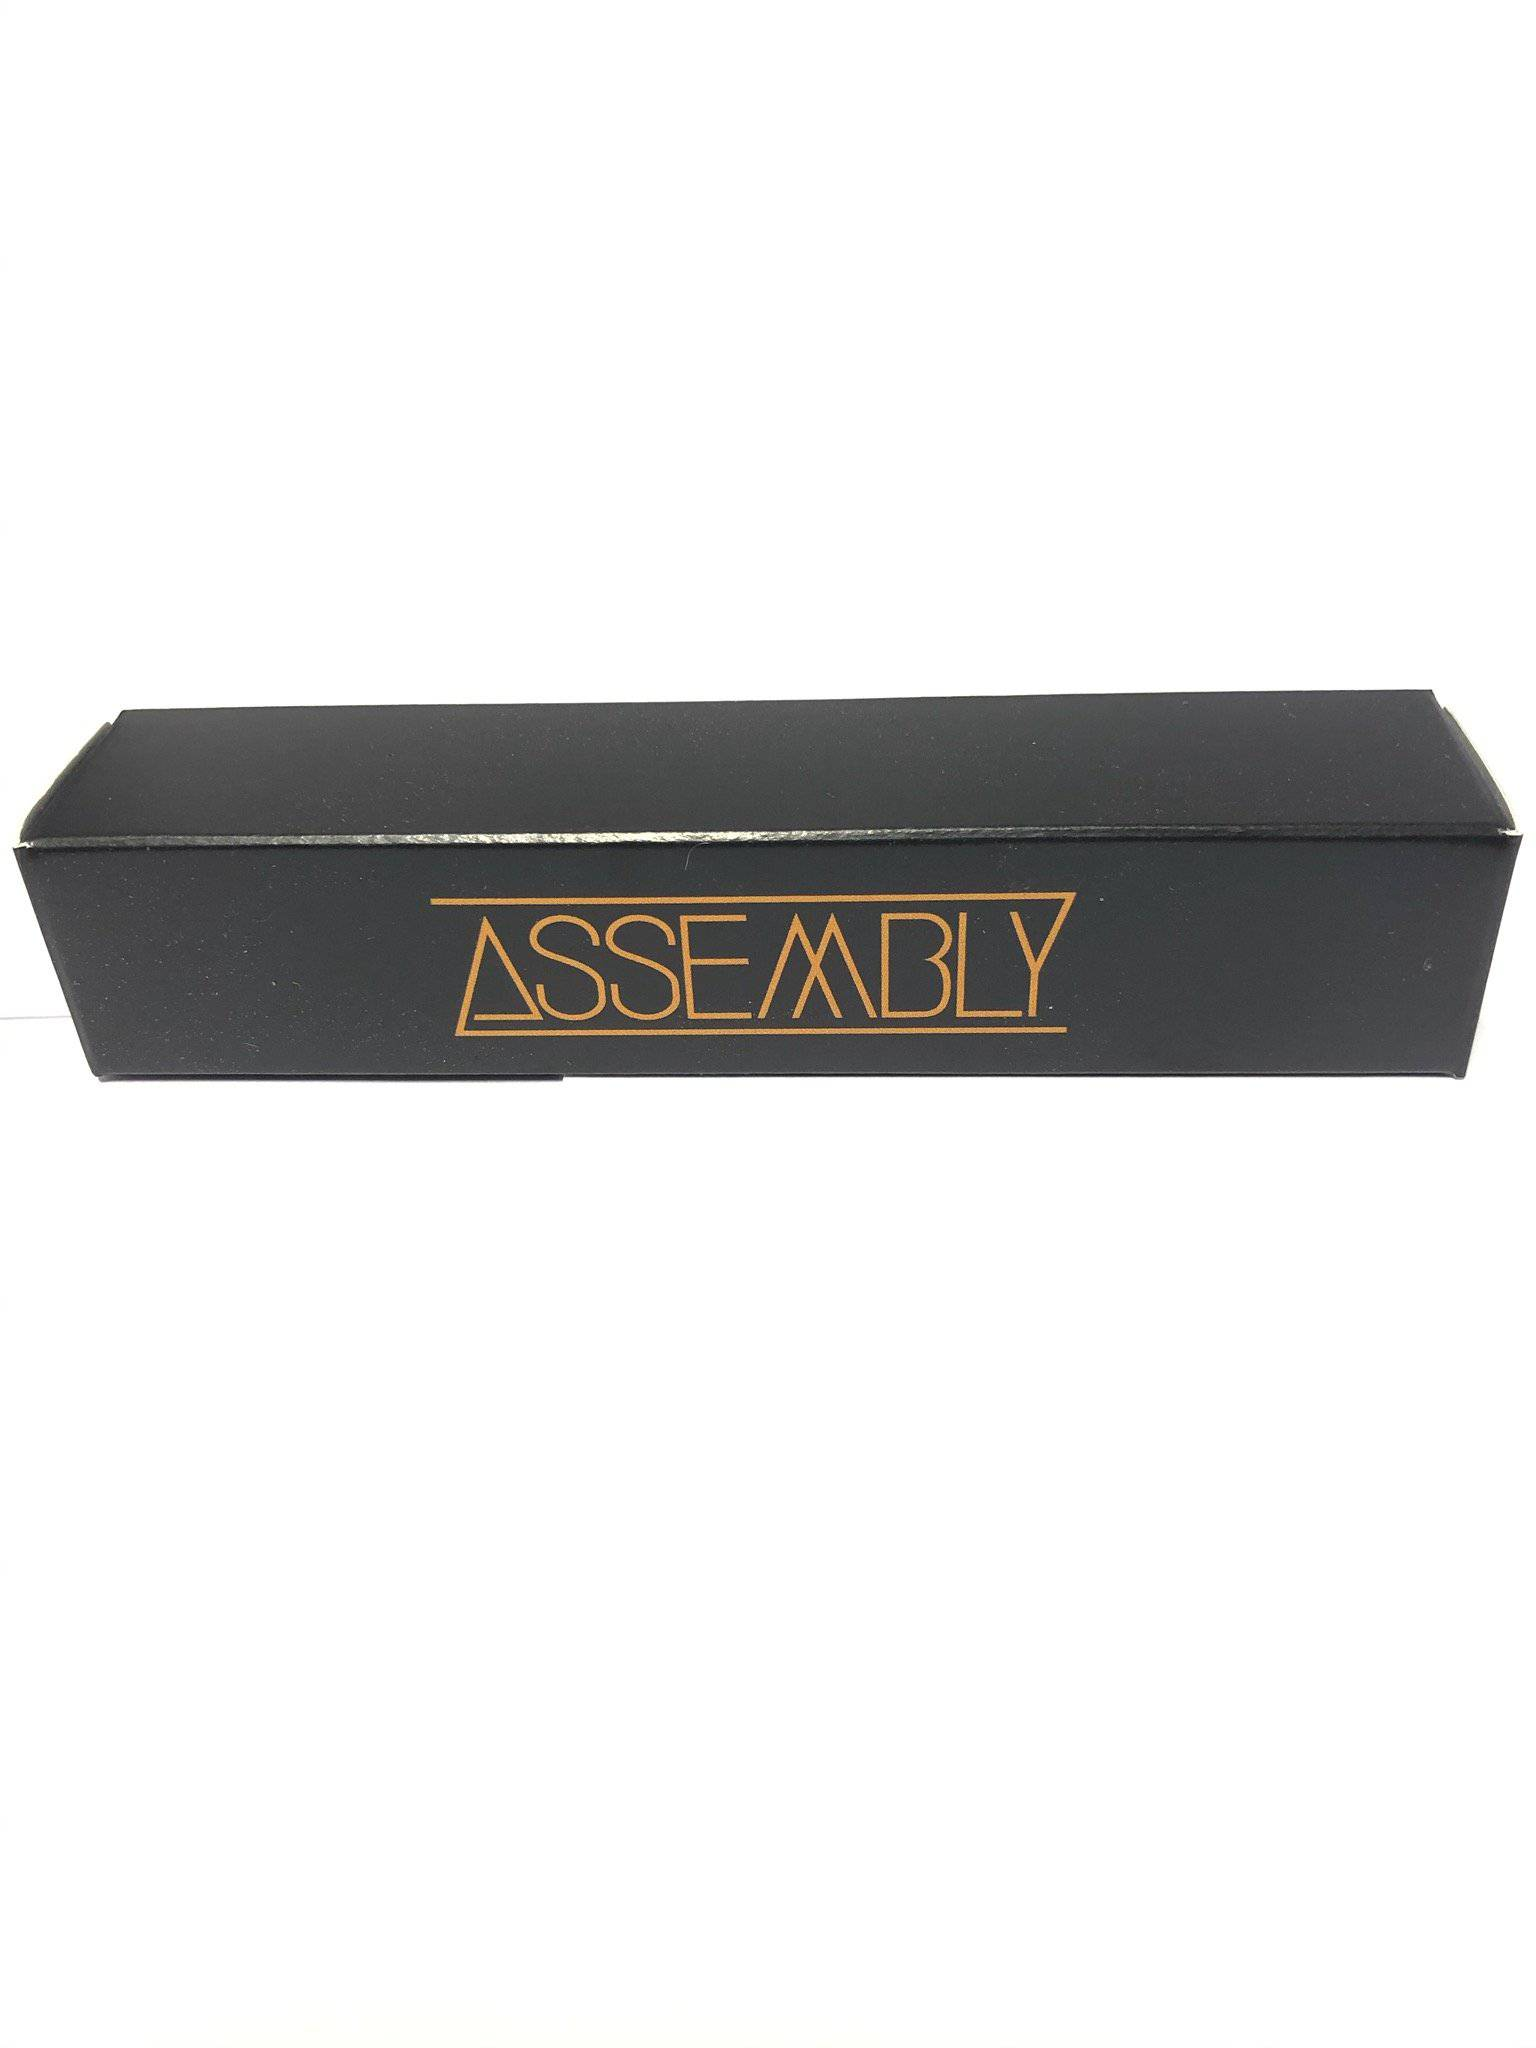 Assembly Live Resin Disposable Vape - Candyland - The Balloon Room